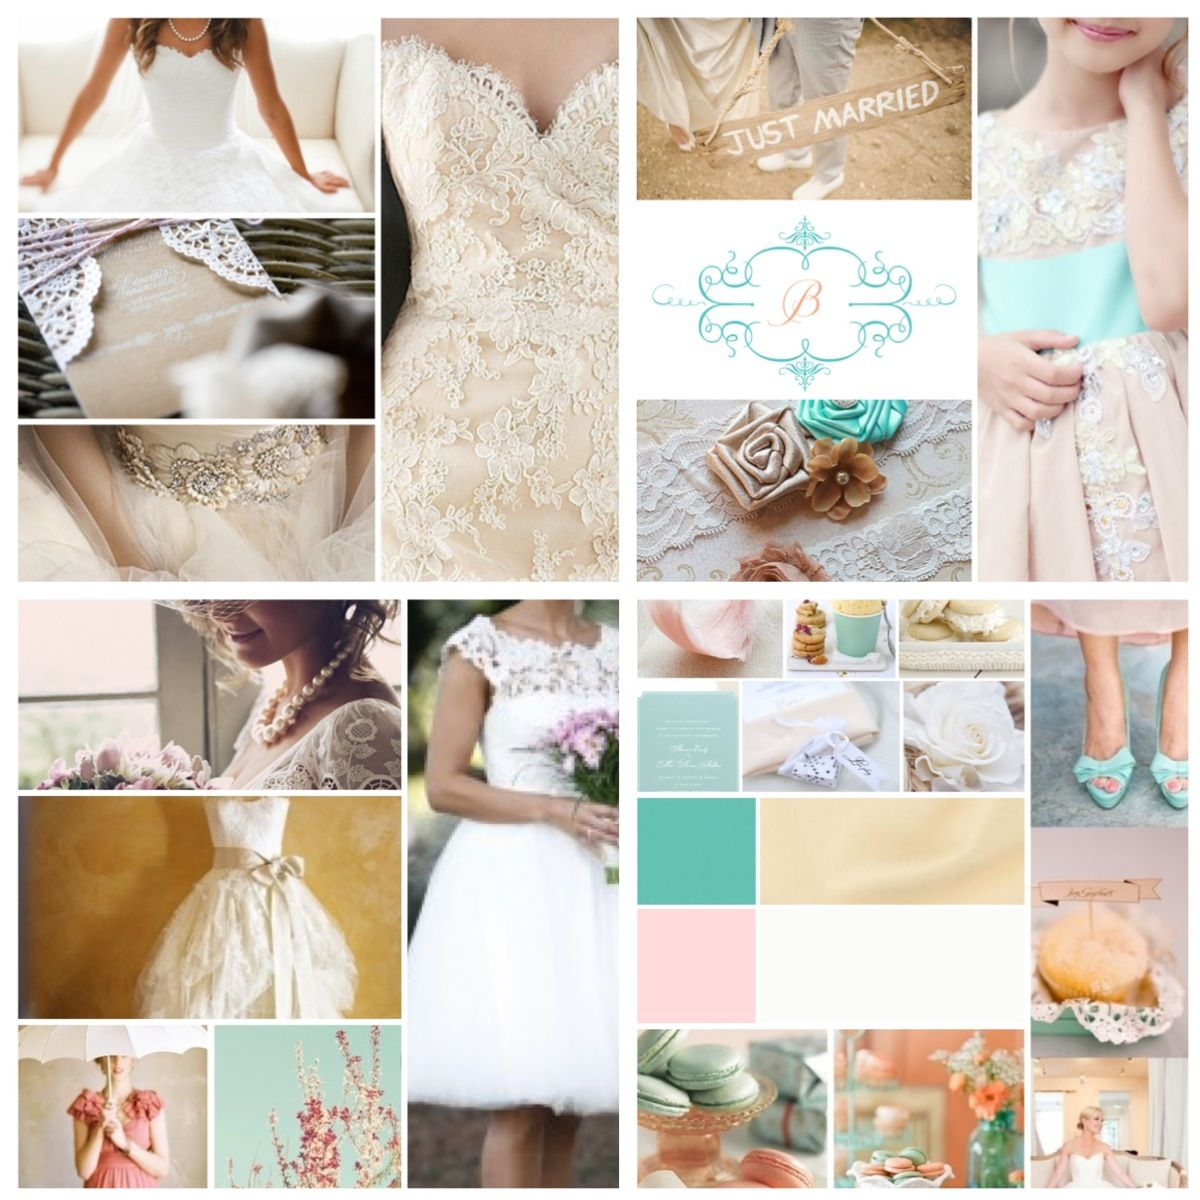 My wedding theme colours - ivory, champagne and white with a touch ...